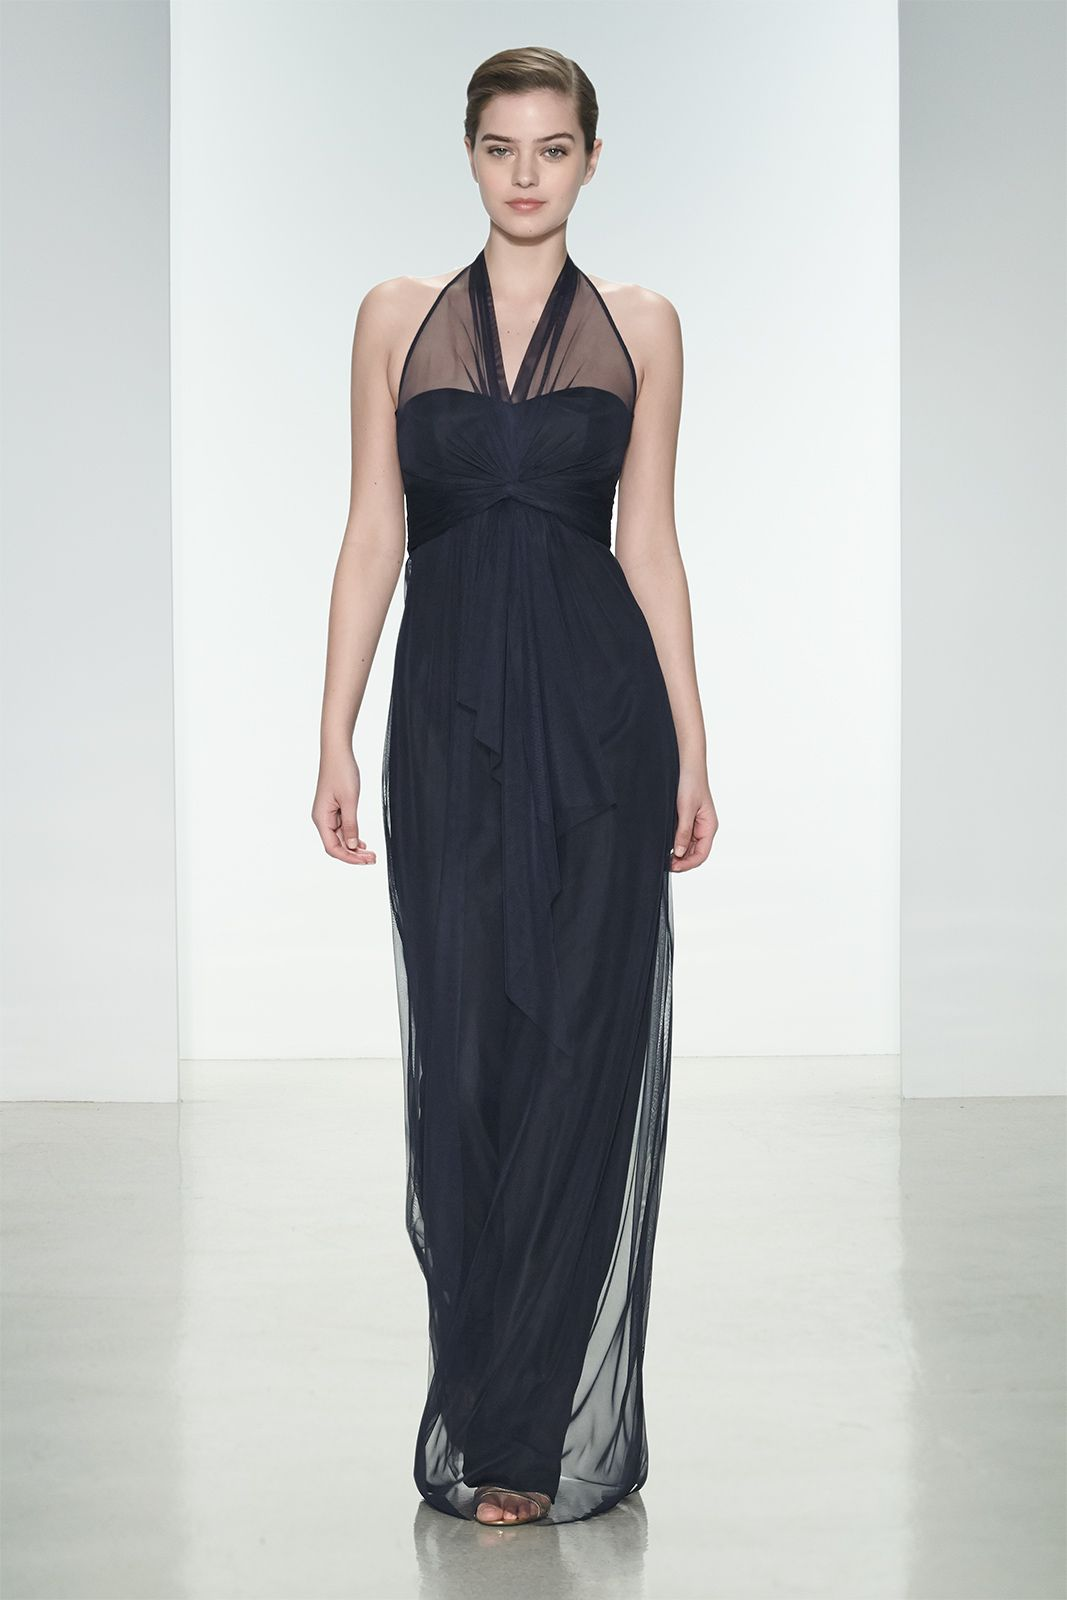 Amsale g857u long bridesmaid dress in navy tulle spring 2015 amsale g857u long bridesmaid dress in navy tulle ombrellifo Choice Image